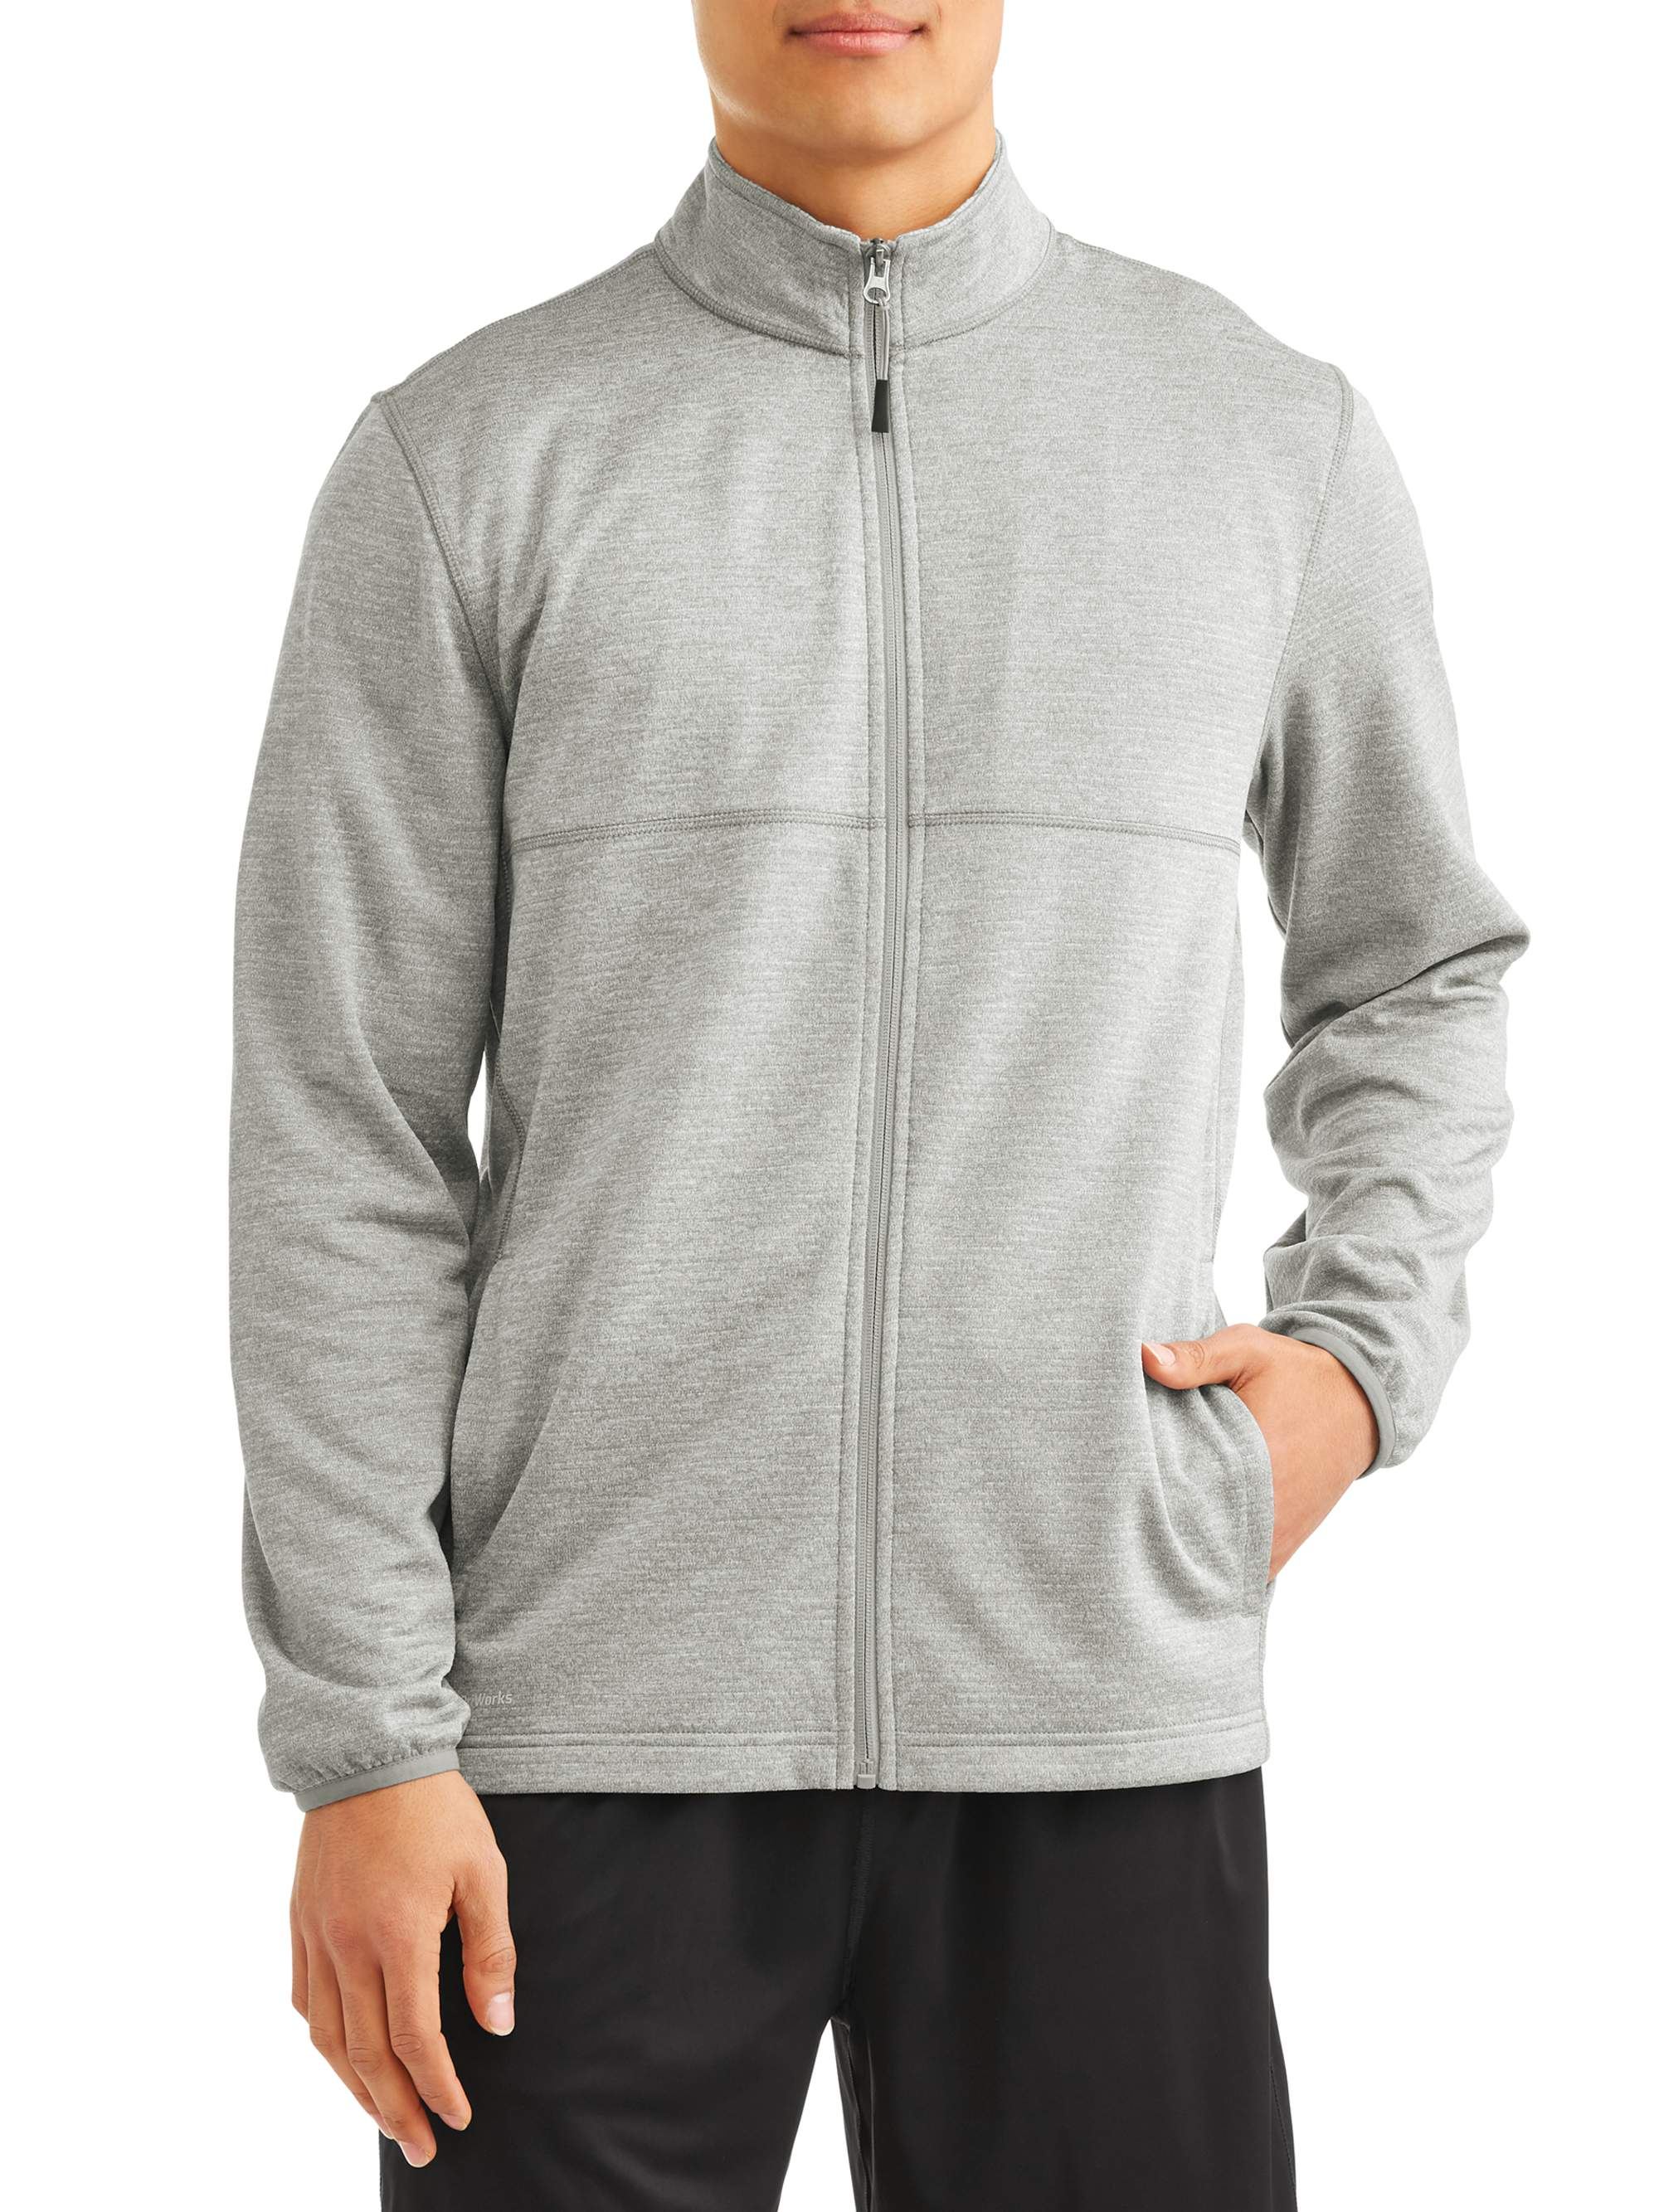 Athletic Works Men's Tech Fleece Jacket